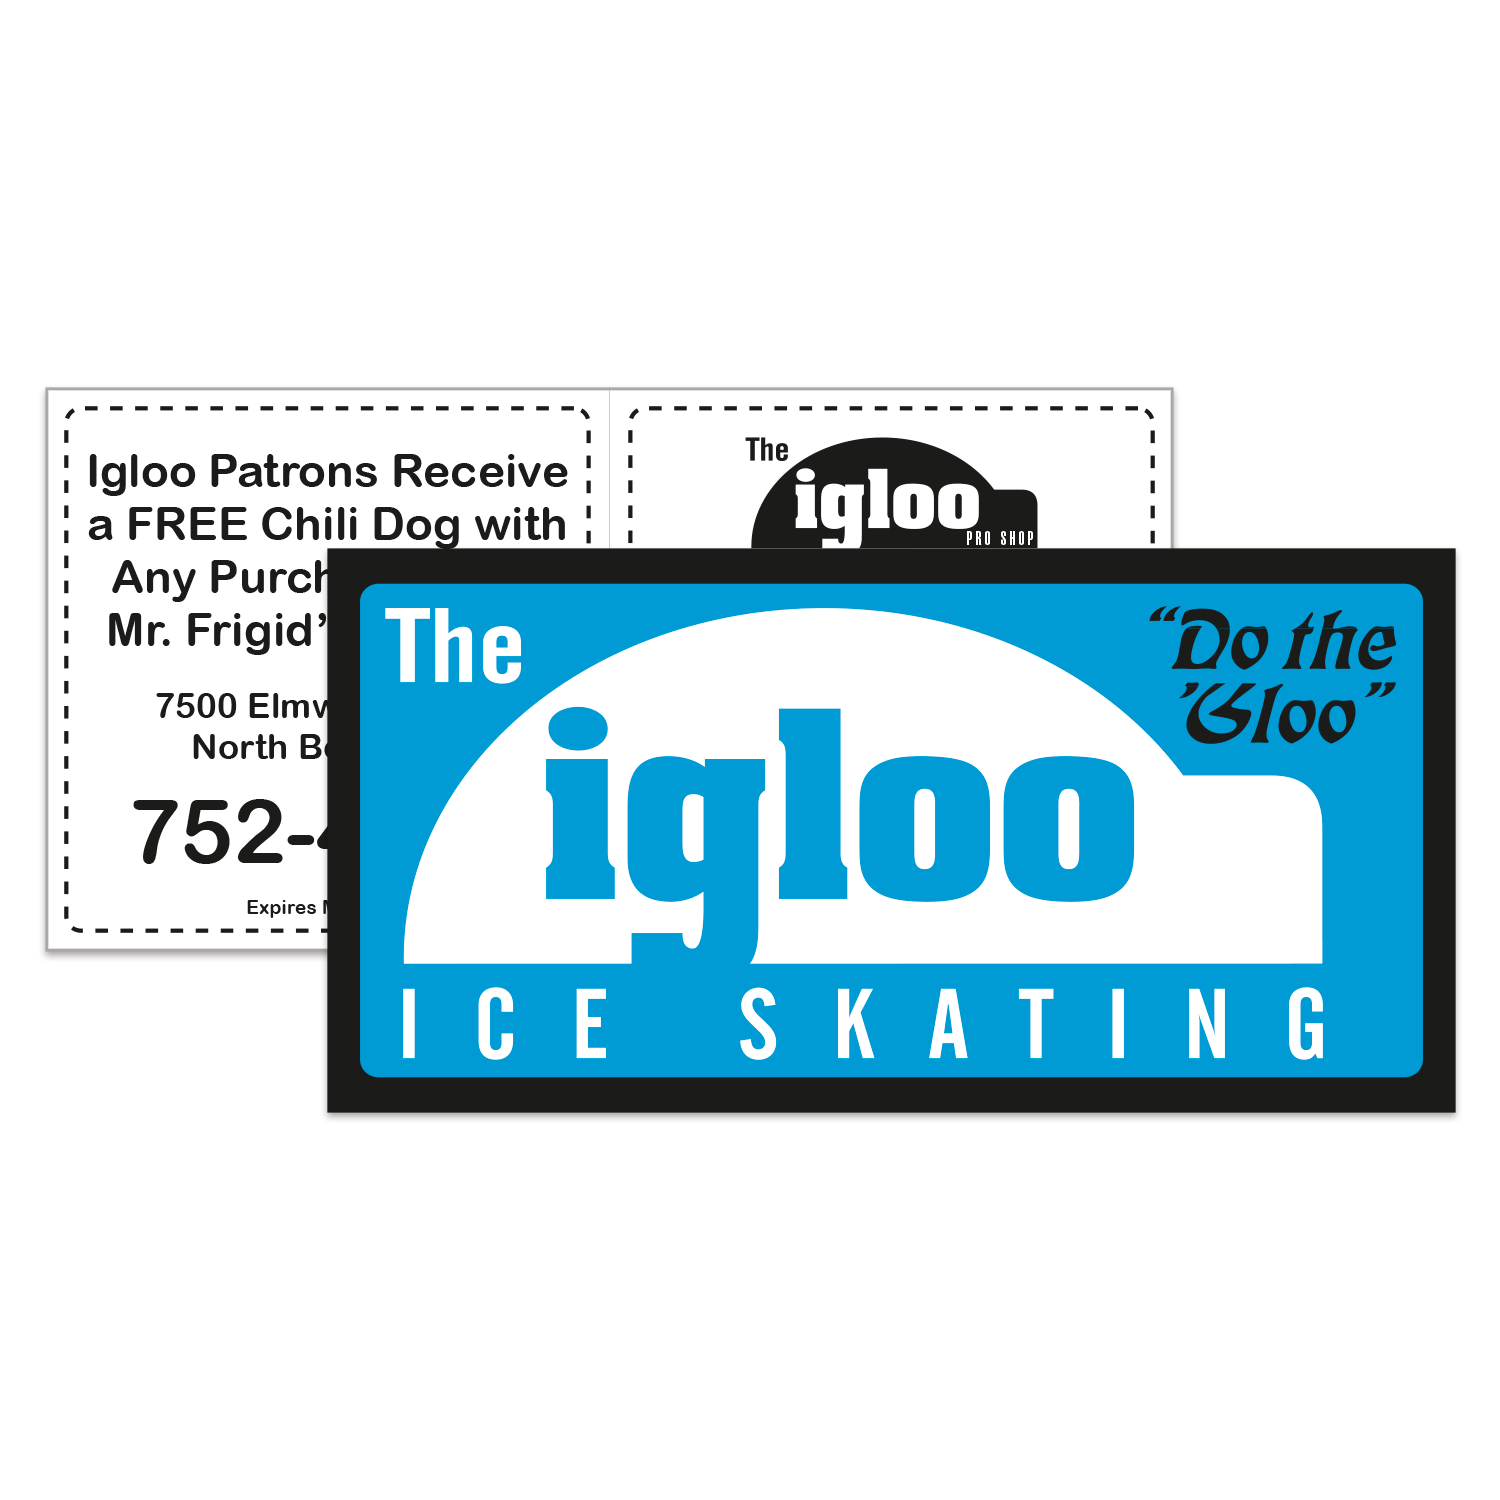 https://www.sswprinting.com/images/products_gallery_images/40701_With-Liner-Igloo-Ice-Skating_hi-res.png